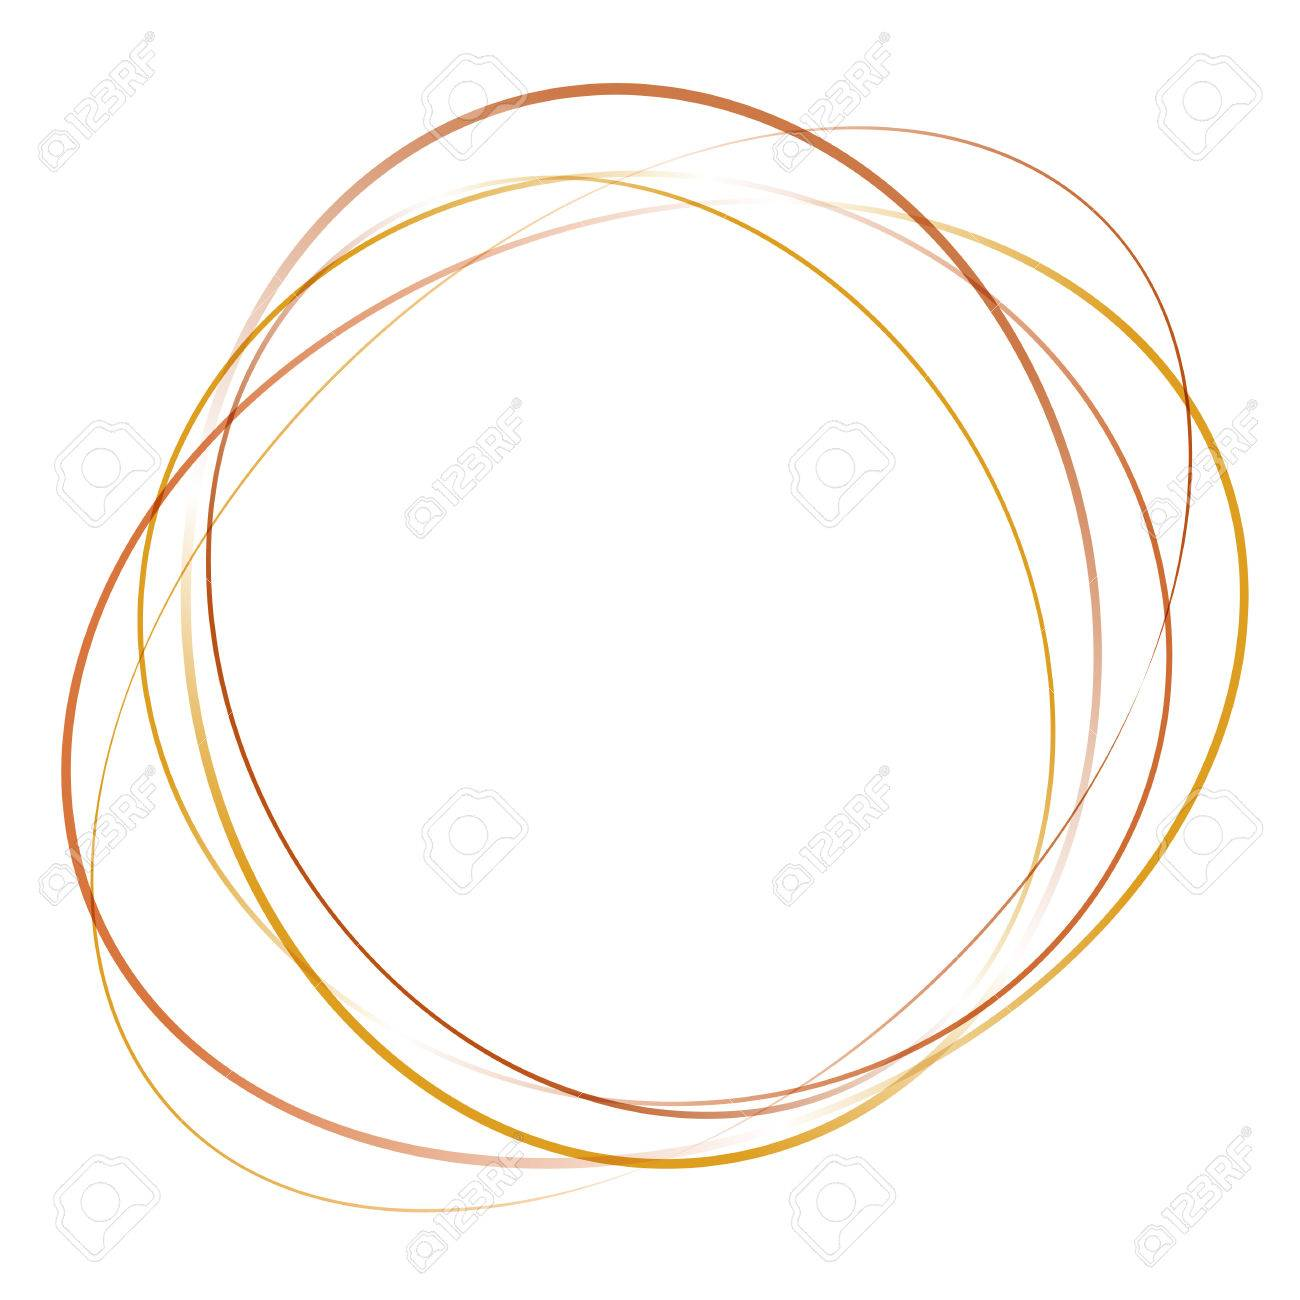 Orange Yellow Abstract Swirl Tornado Of Moving Circles Vector